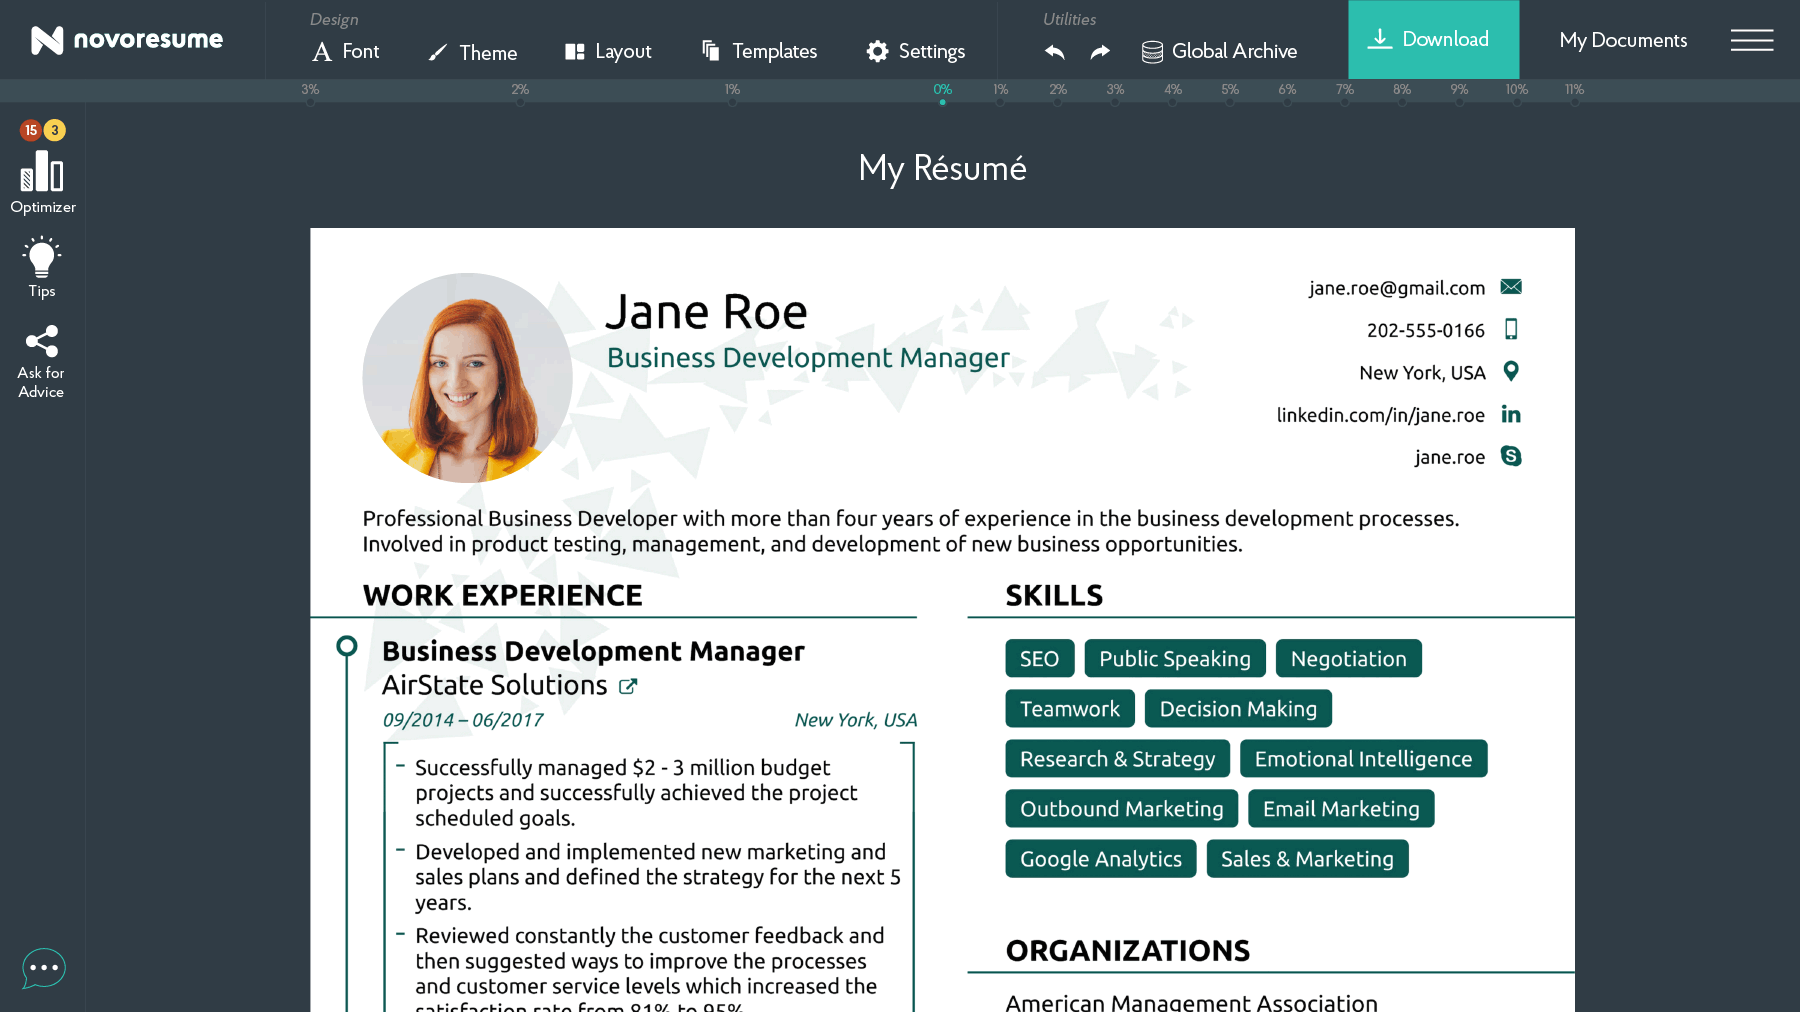 15 best online resume builders in 2020